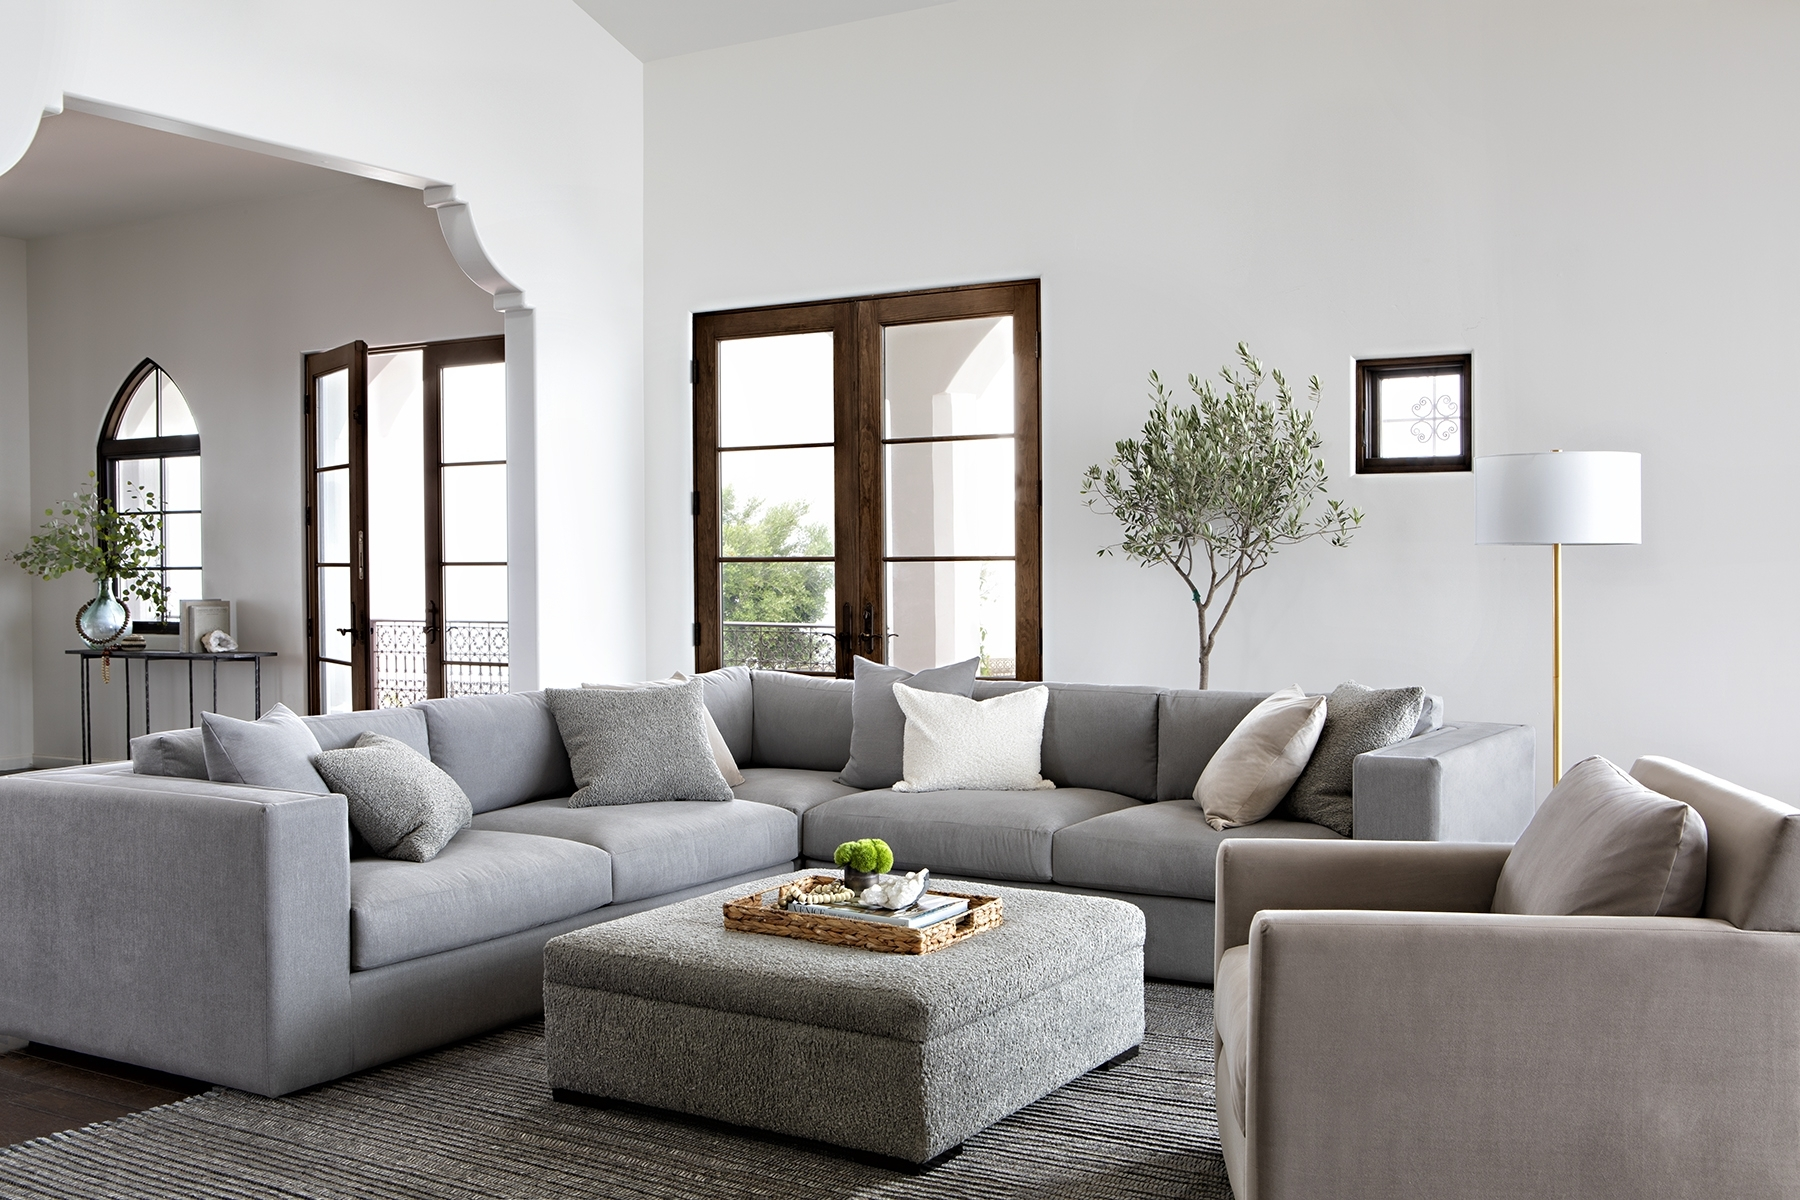 Nate Berkus & Jeremiah Brent's Newest Affordable Collection | Rue With Regard To Soane 3 Piece Sectionals By Nate Berkus And Jeremiah Brent (Photo 16 of 30)